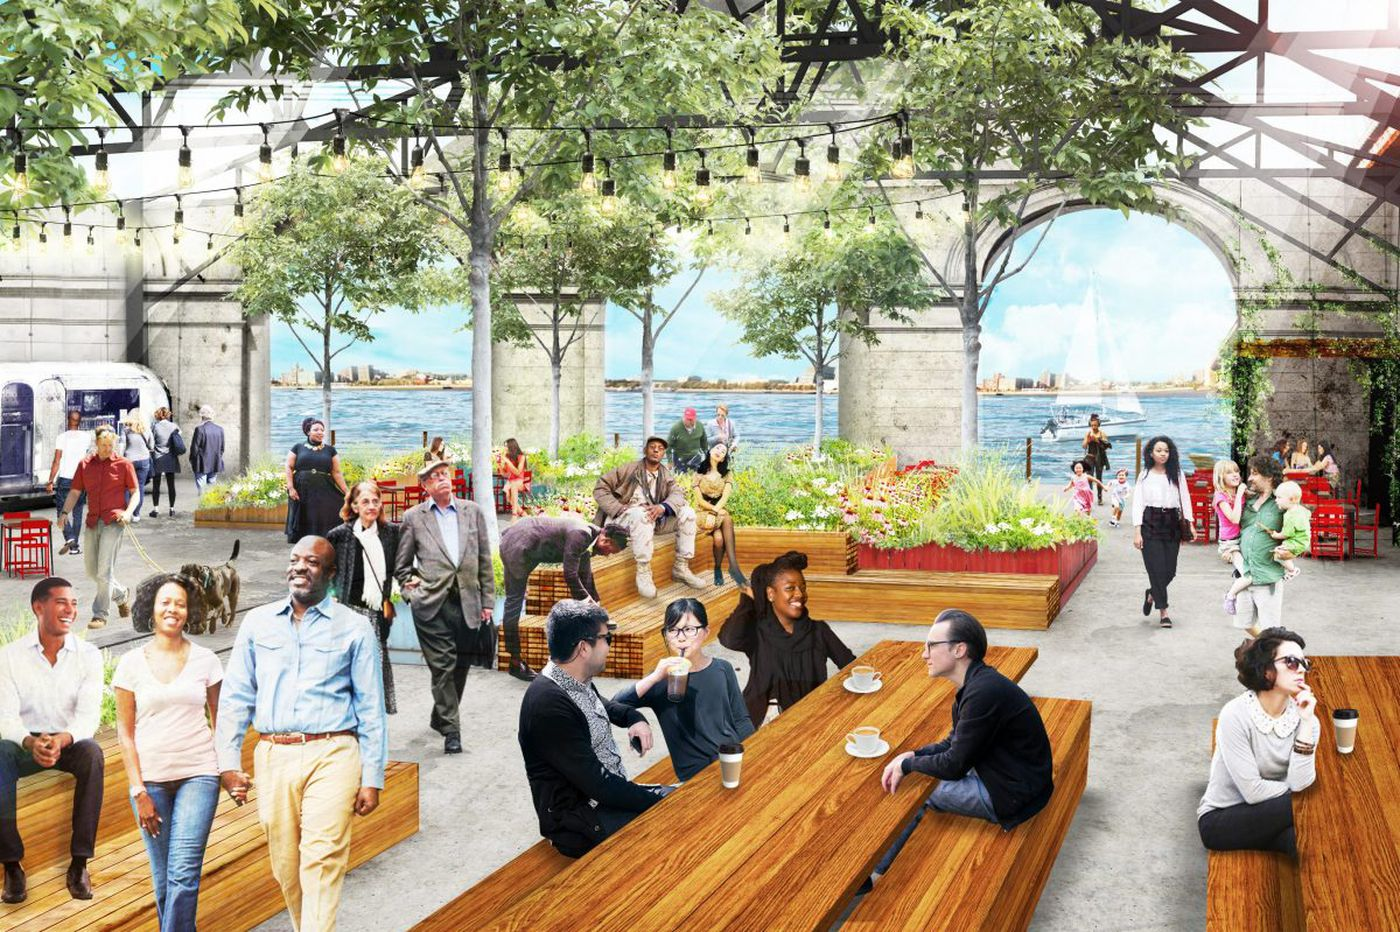 Filling a forgotten Delaware River pier building with art and beer